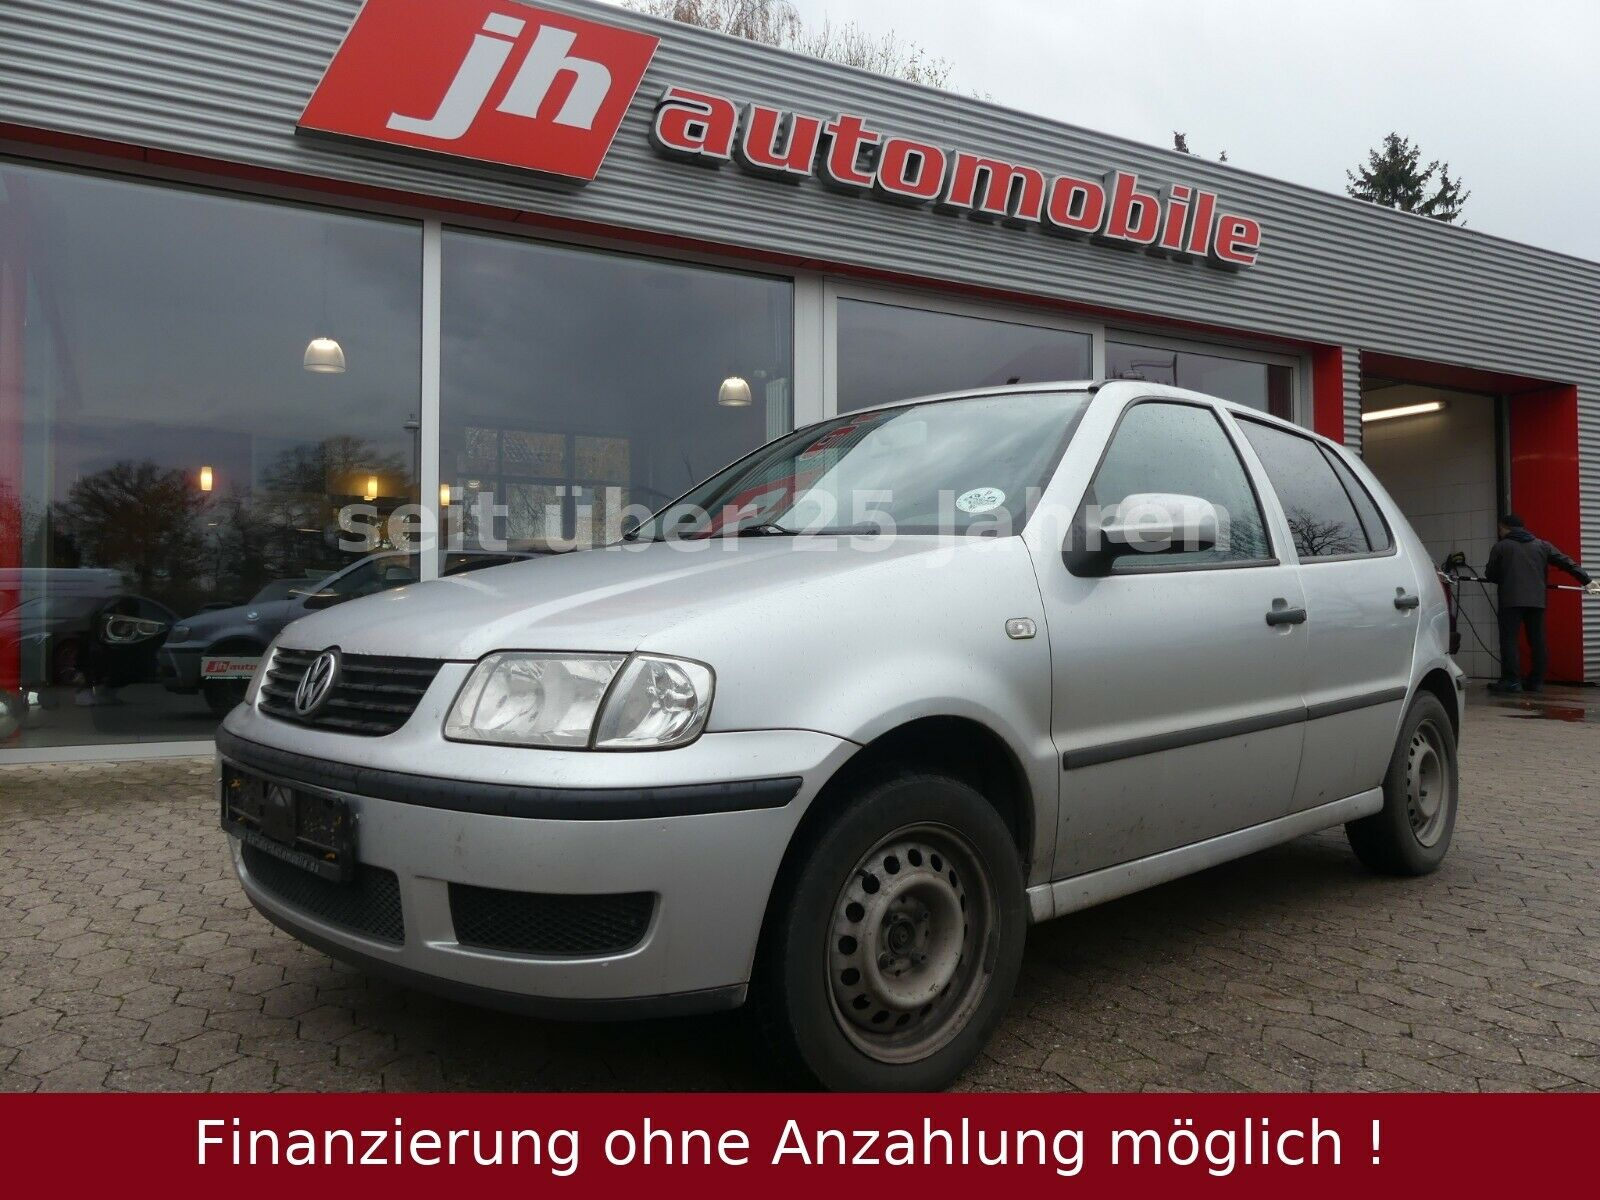 VW Polo III Basis*Allwetter*Schiebedach*Fin ab 69€